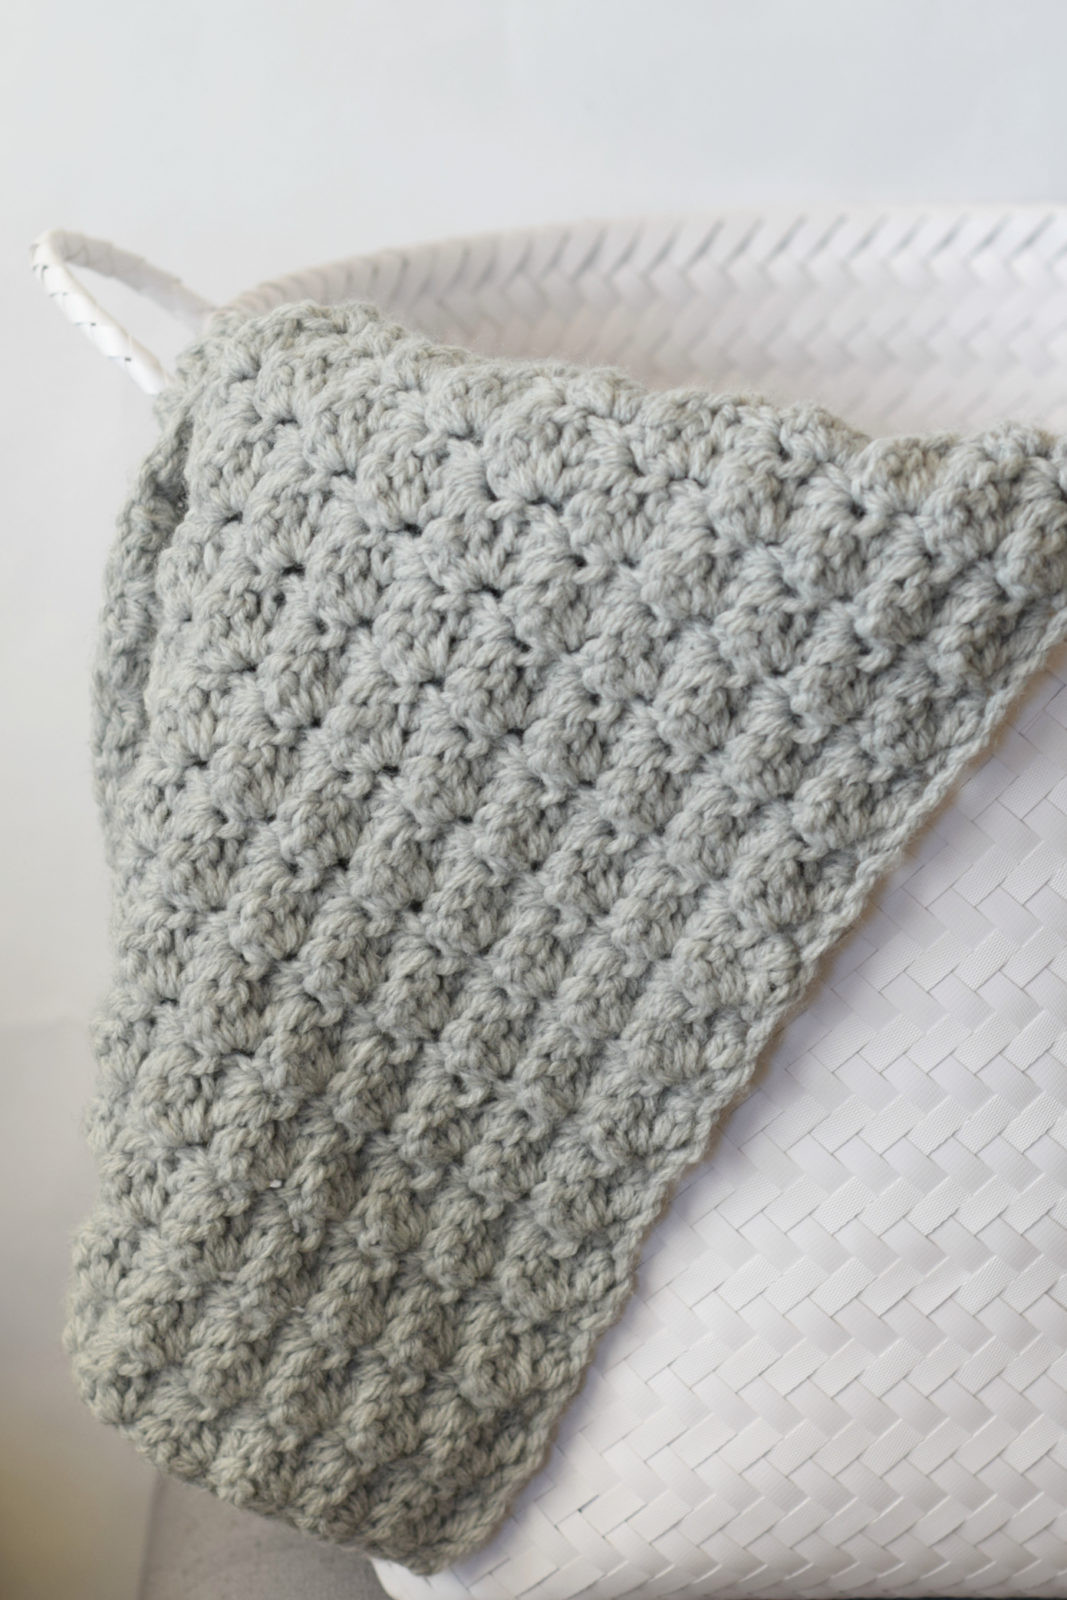 Afghan Blanket Crochet Pattern New Simple Crocheted Blanket Go to Pattern – Mama In A Stitch Of Incredible 43 Pictures Afghan Blanket Crochet Pattern